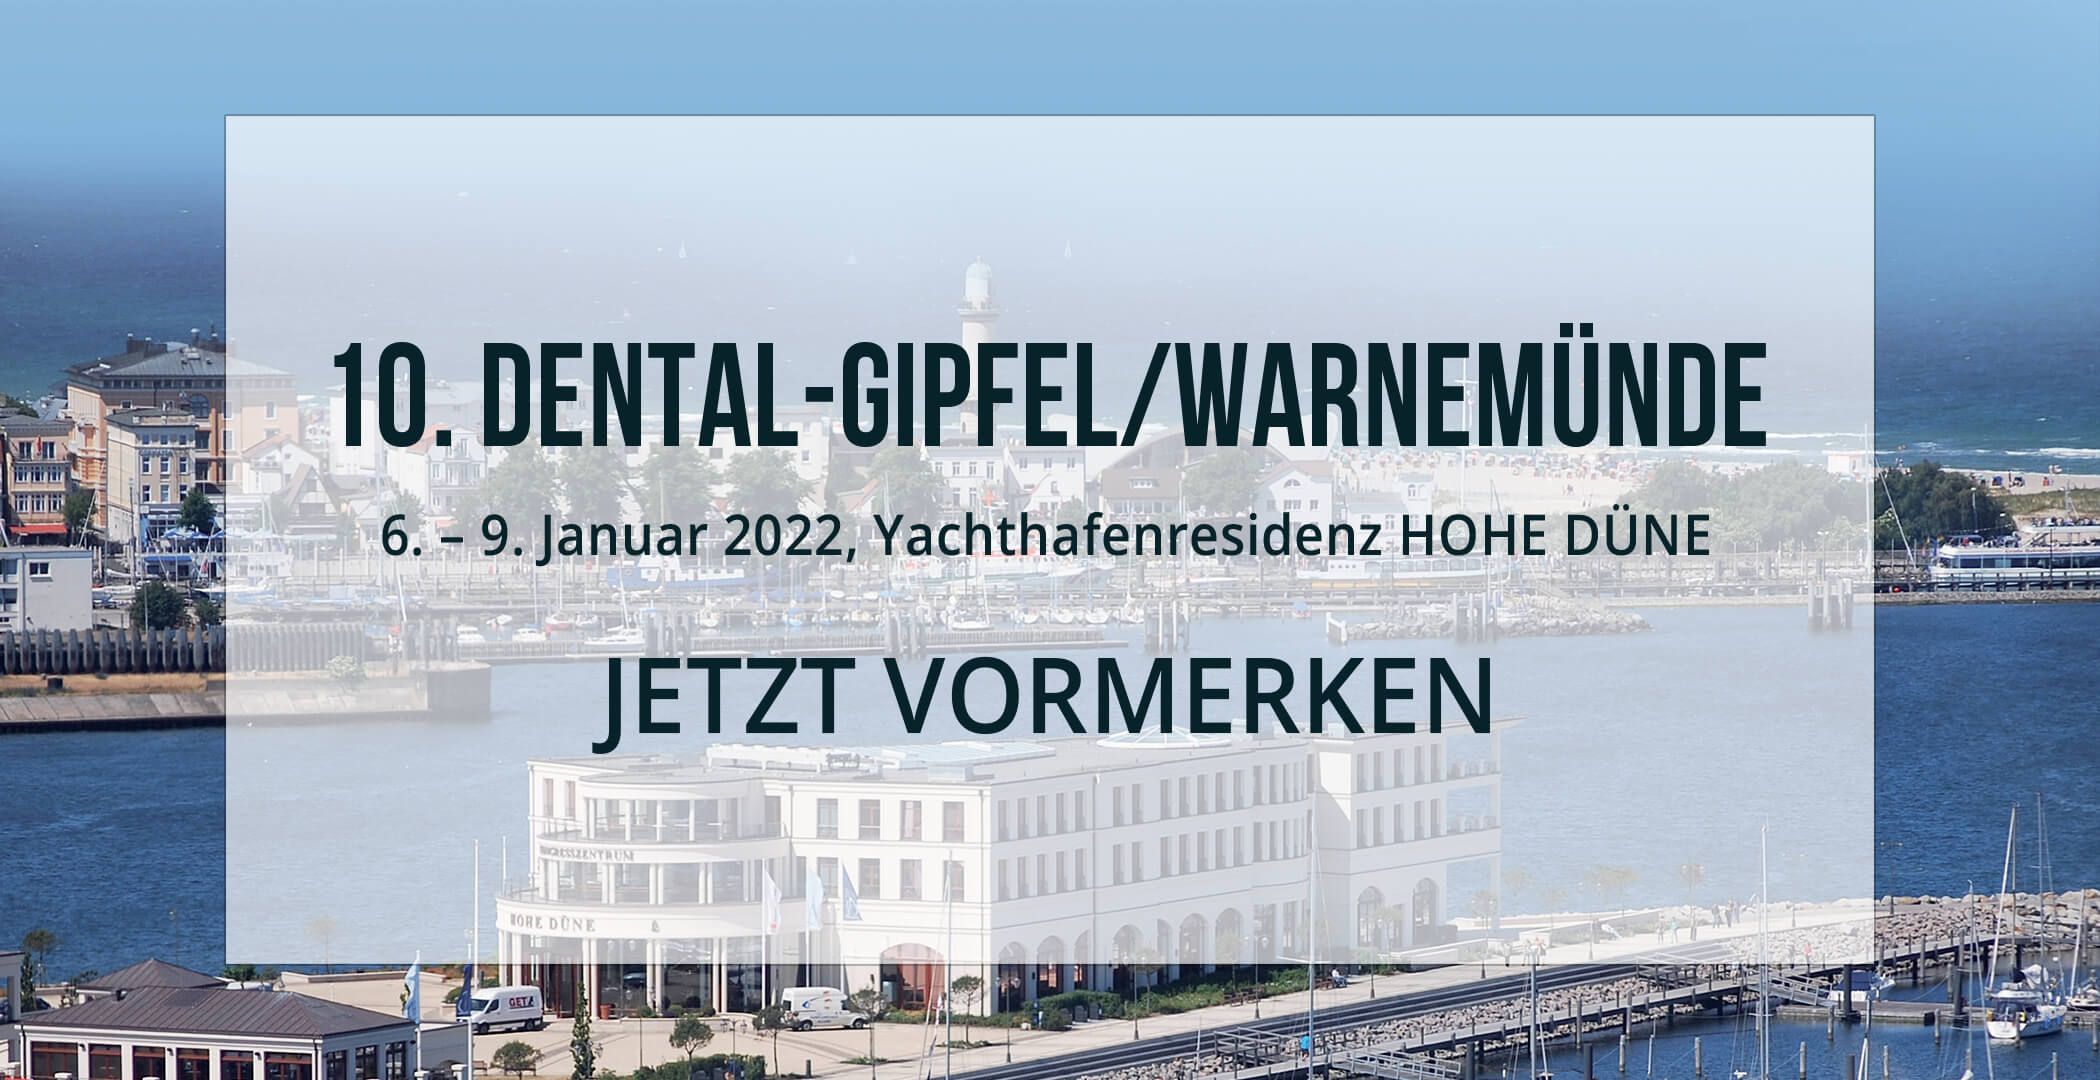 DBalance_Warnemuende-Dental-Gipfel